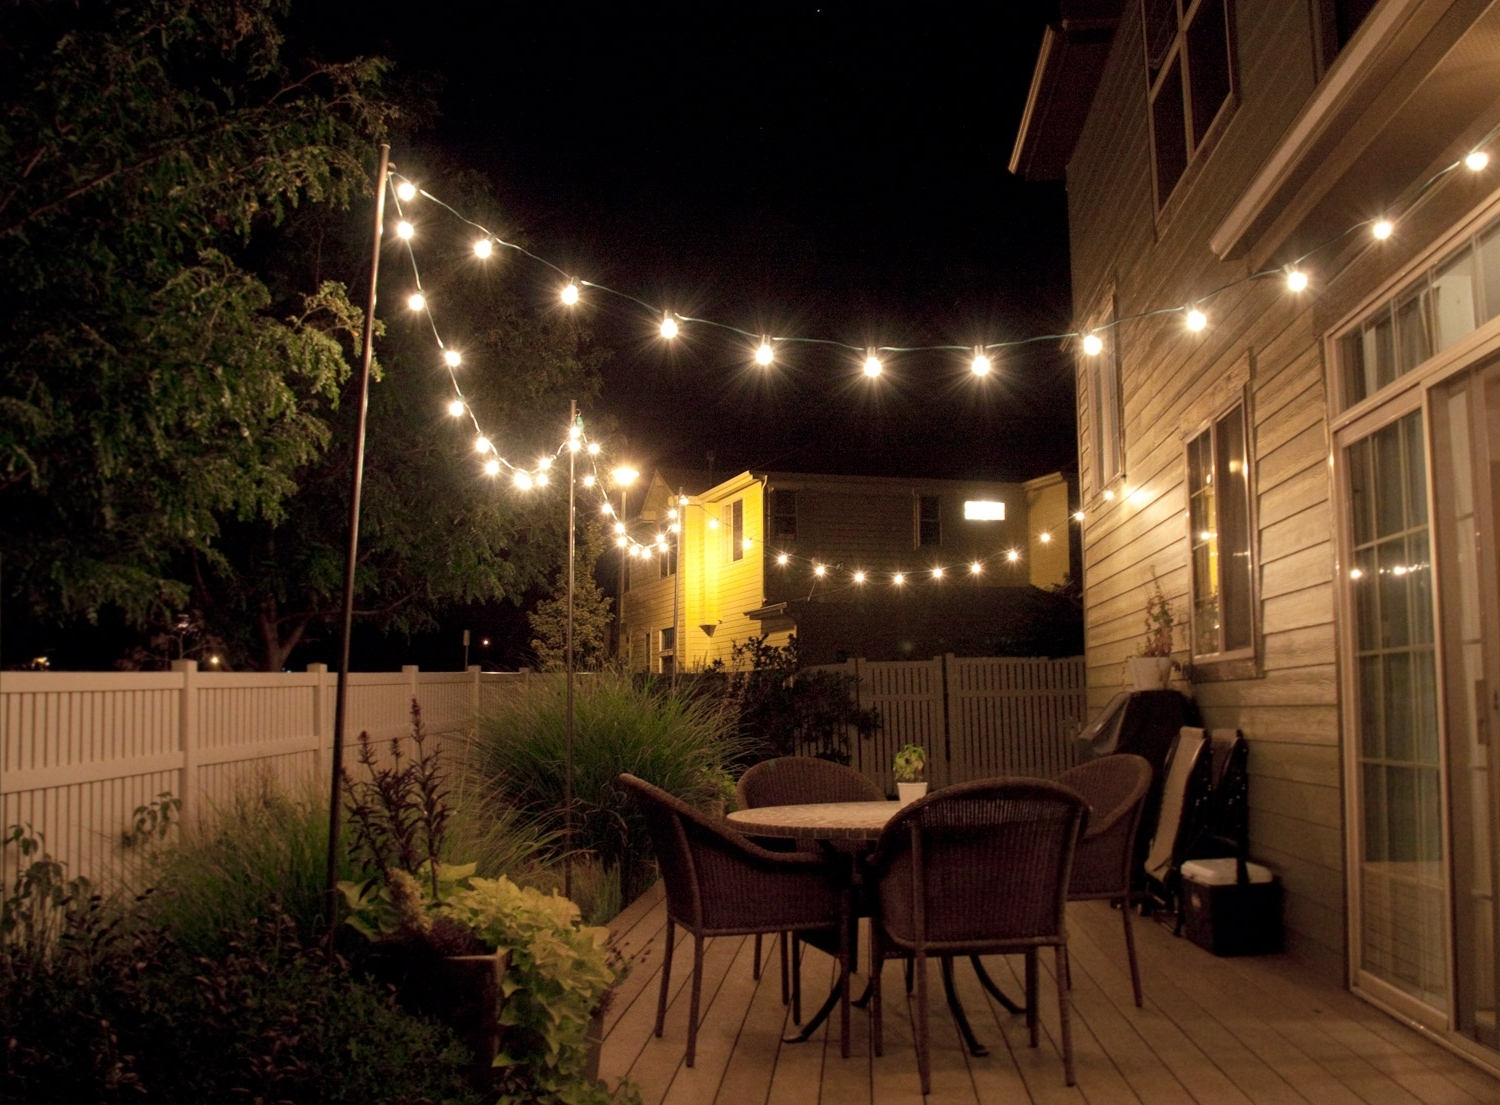 Creative Of Outdoor Lights For Patio House Decor Photos Bright July Within Most Current Diy Outdoor Lanterns (View 4 of 20)